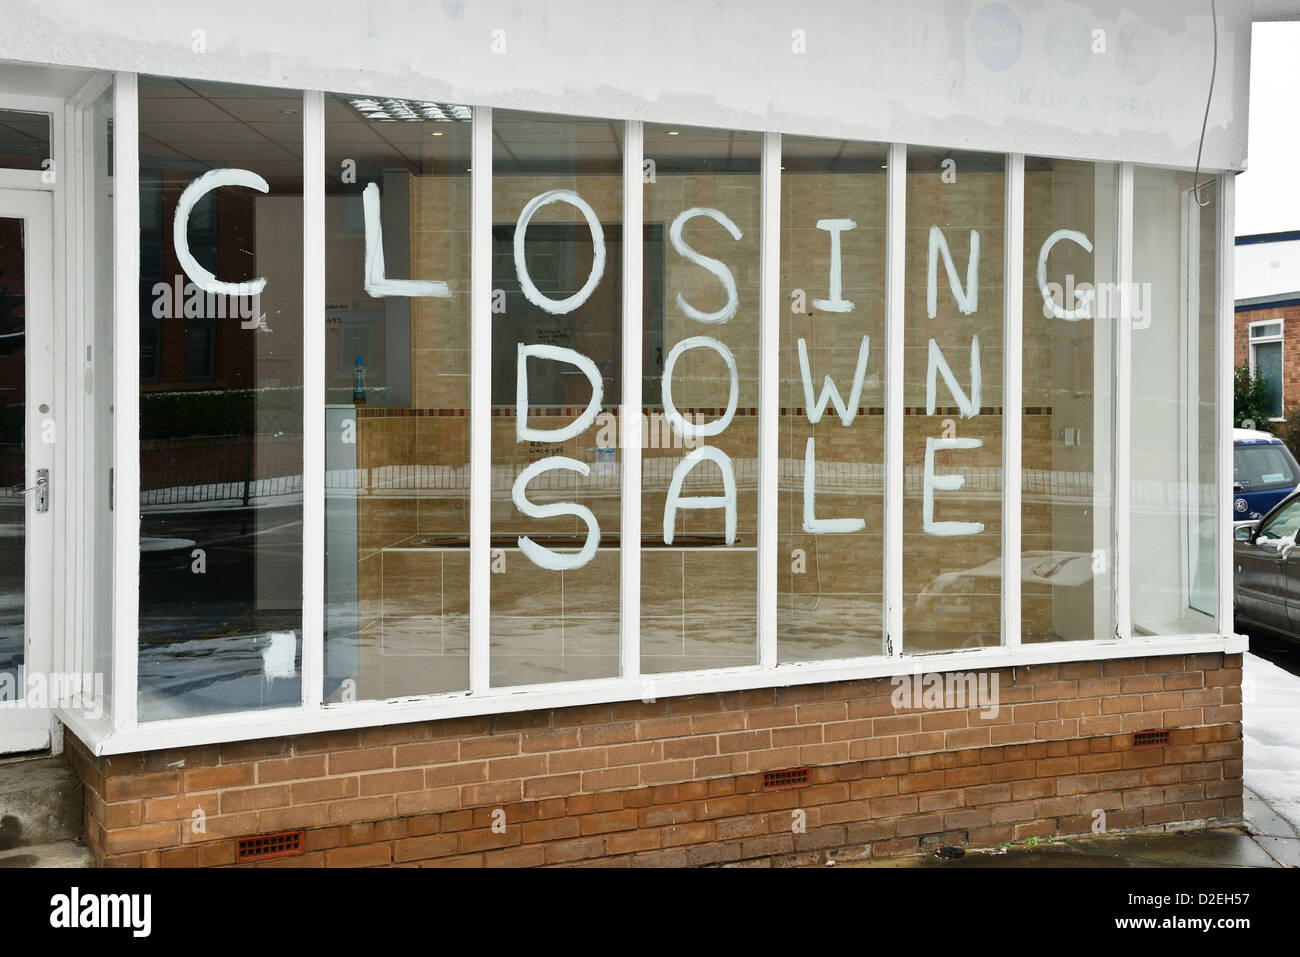 Closing down sale notice in a shop window - Stock Image